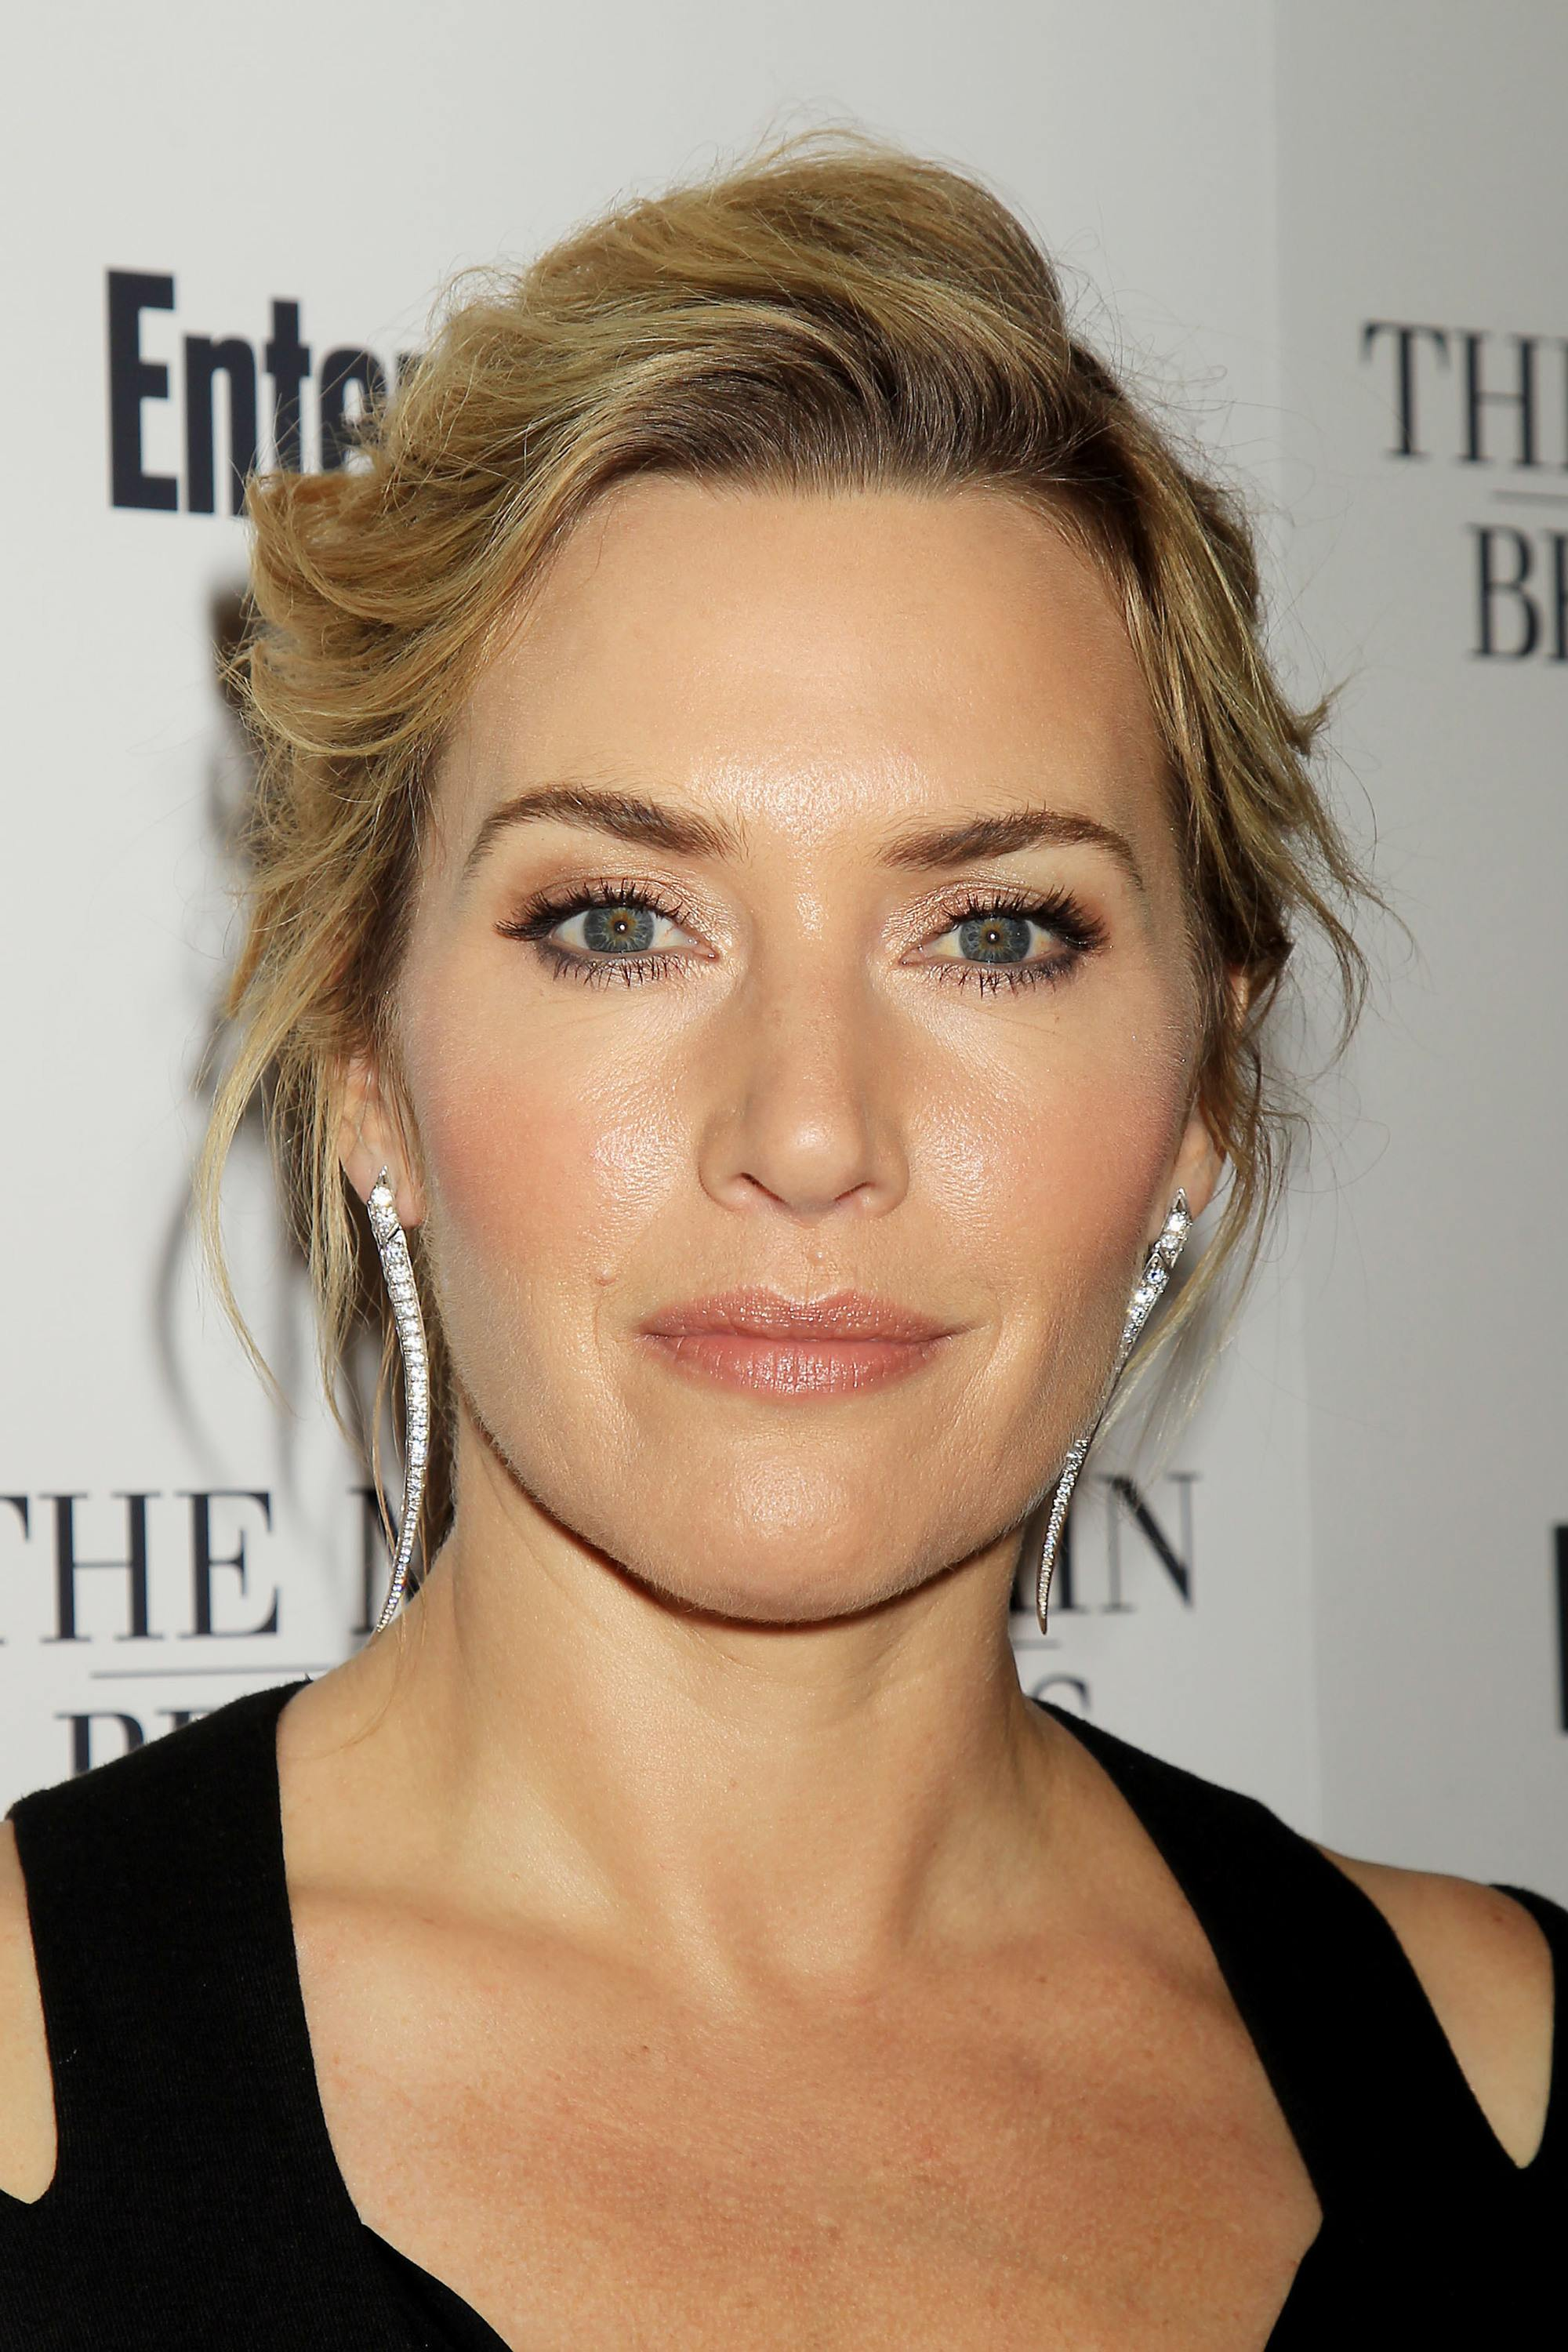 kate winslet rectangle face shape with wavy blonde hair in updo